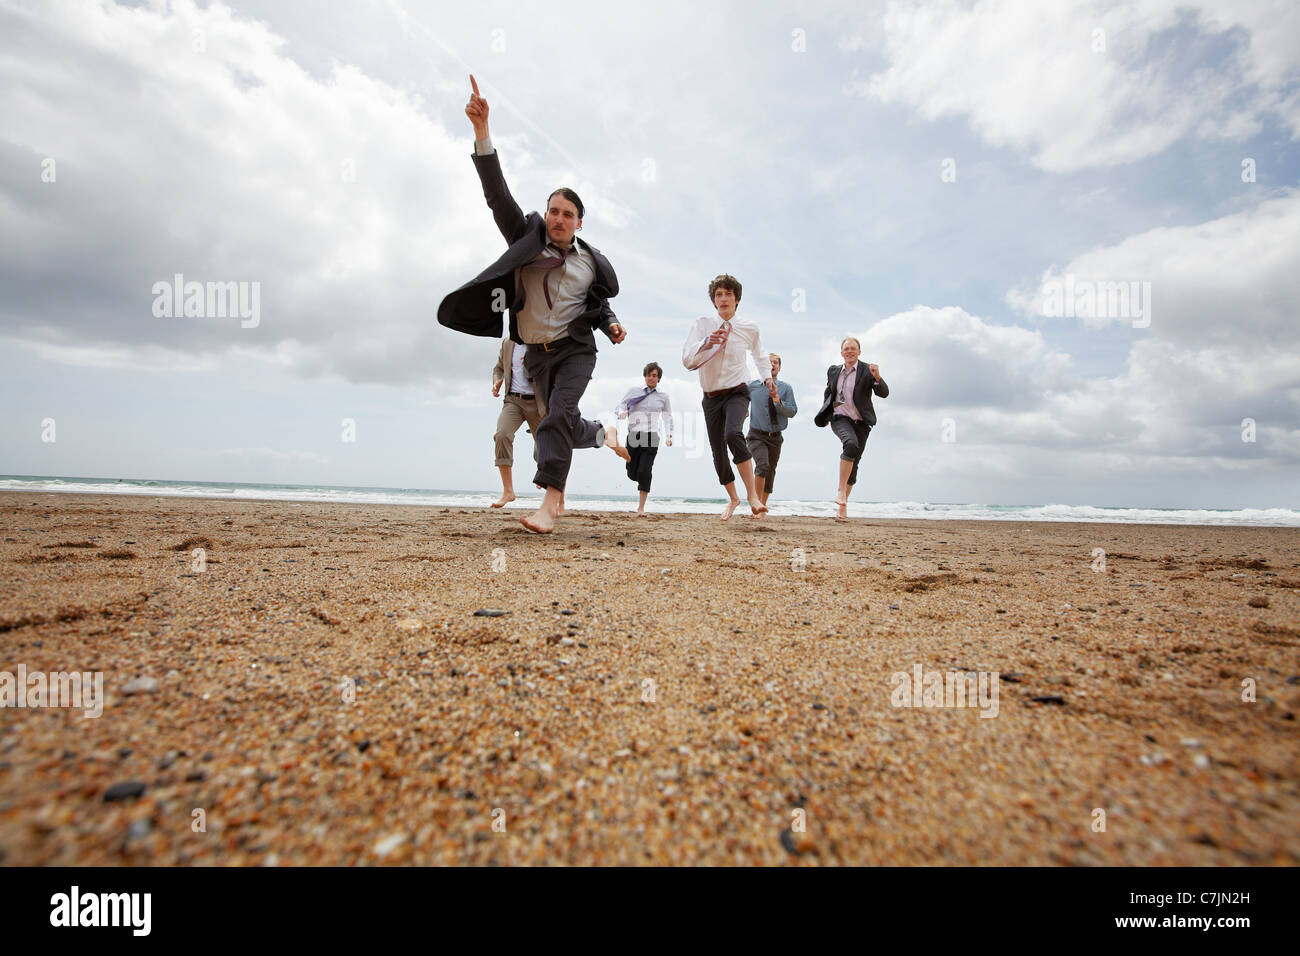 Businessmen running on beach Stock Photo